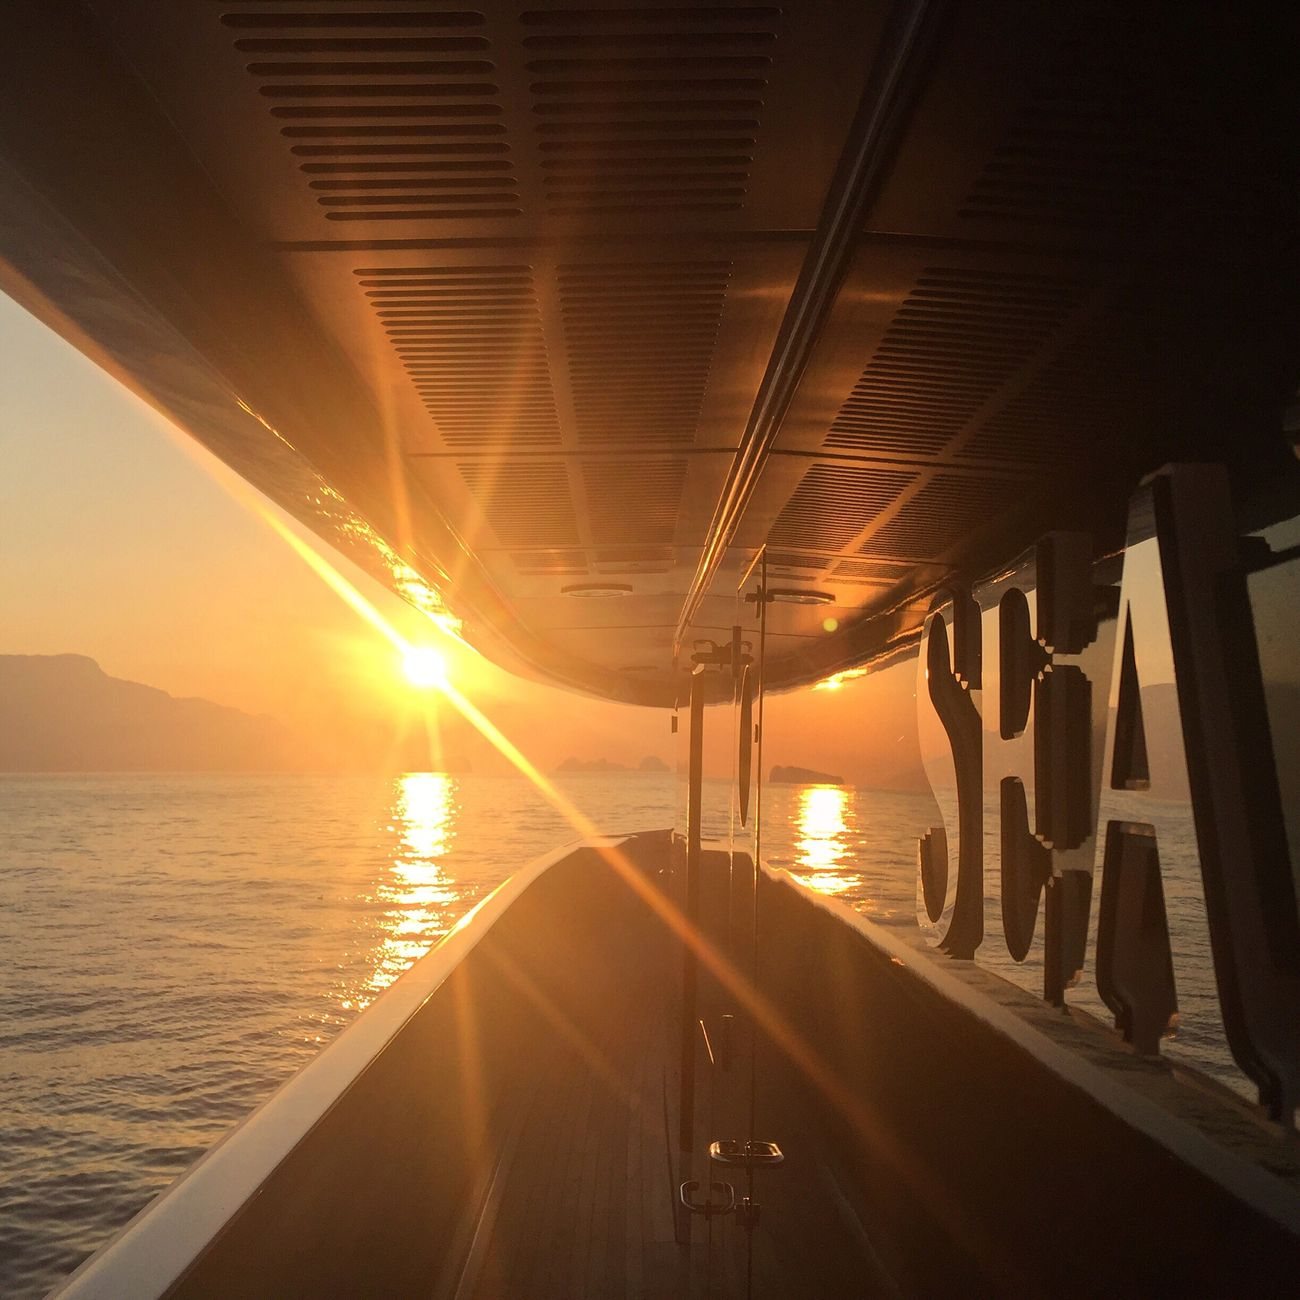 Water Sea No People Sunset Boat Deck Seascape Horizon Over Water Sea And Sky Yacht Boat Travel Journey Luxury Sunset_collection Day Beutiful  Italy